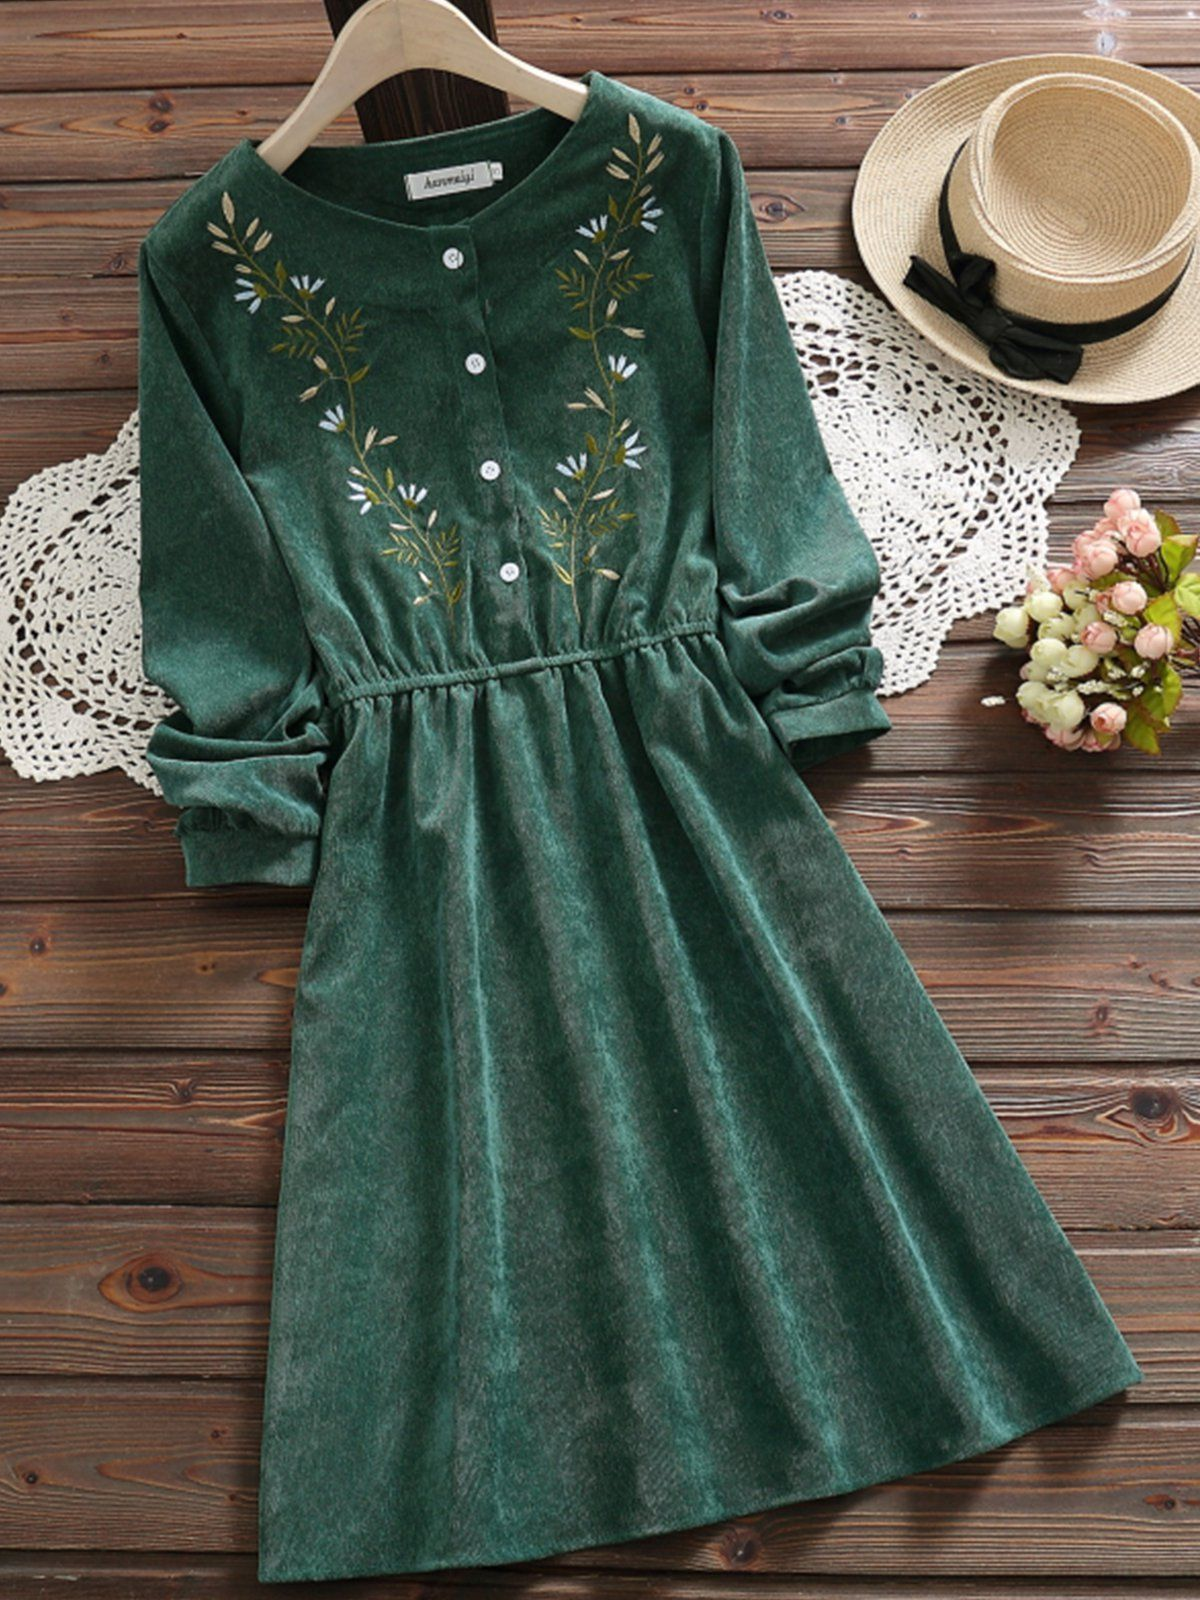 b98c6433c43 Green Embroidery Long Sleeve Dresses – AmourFab